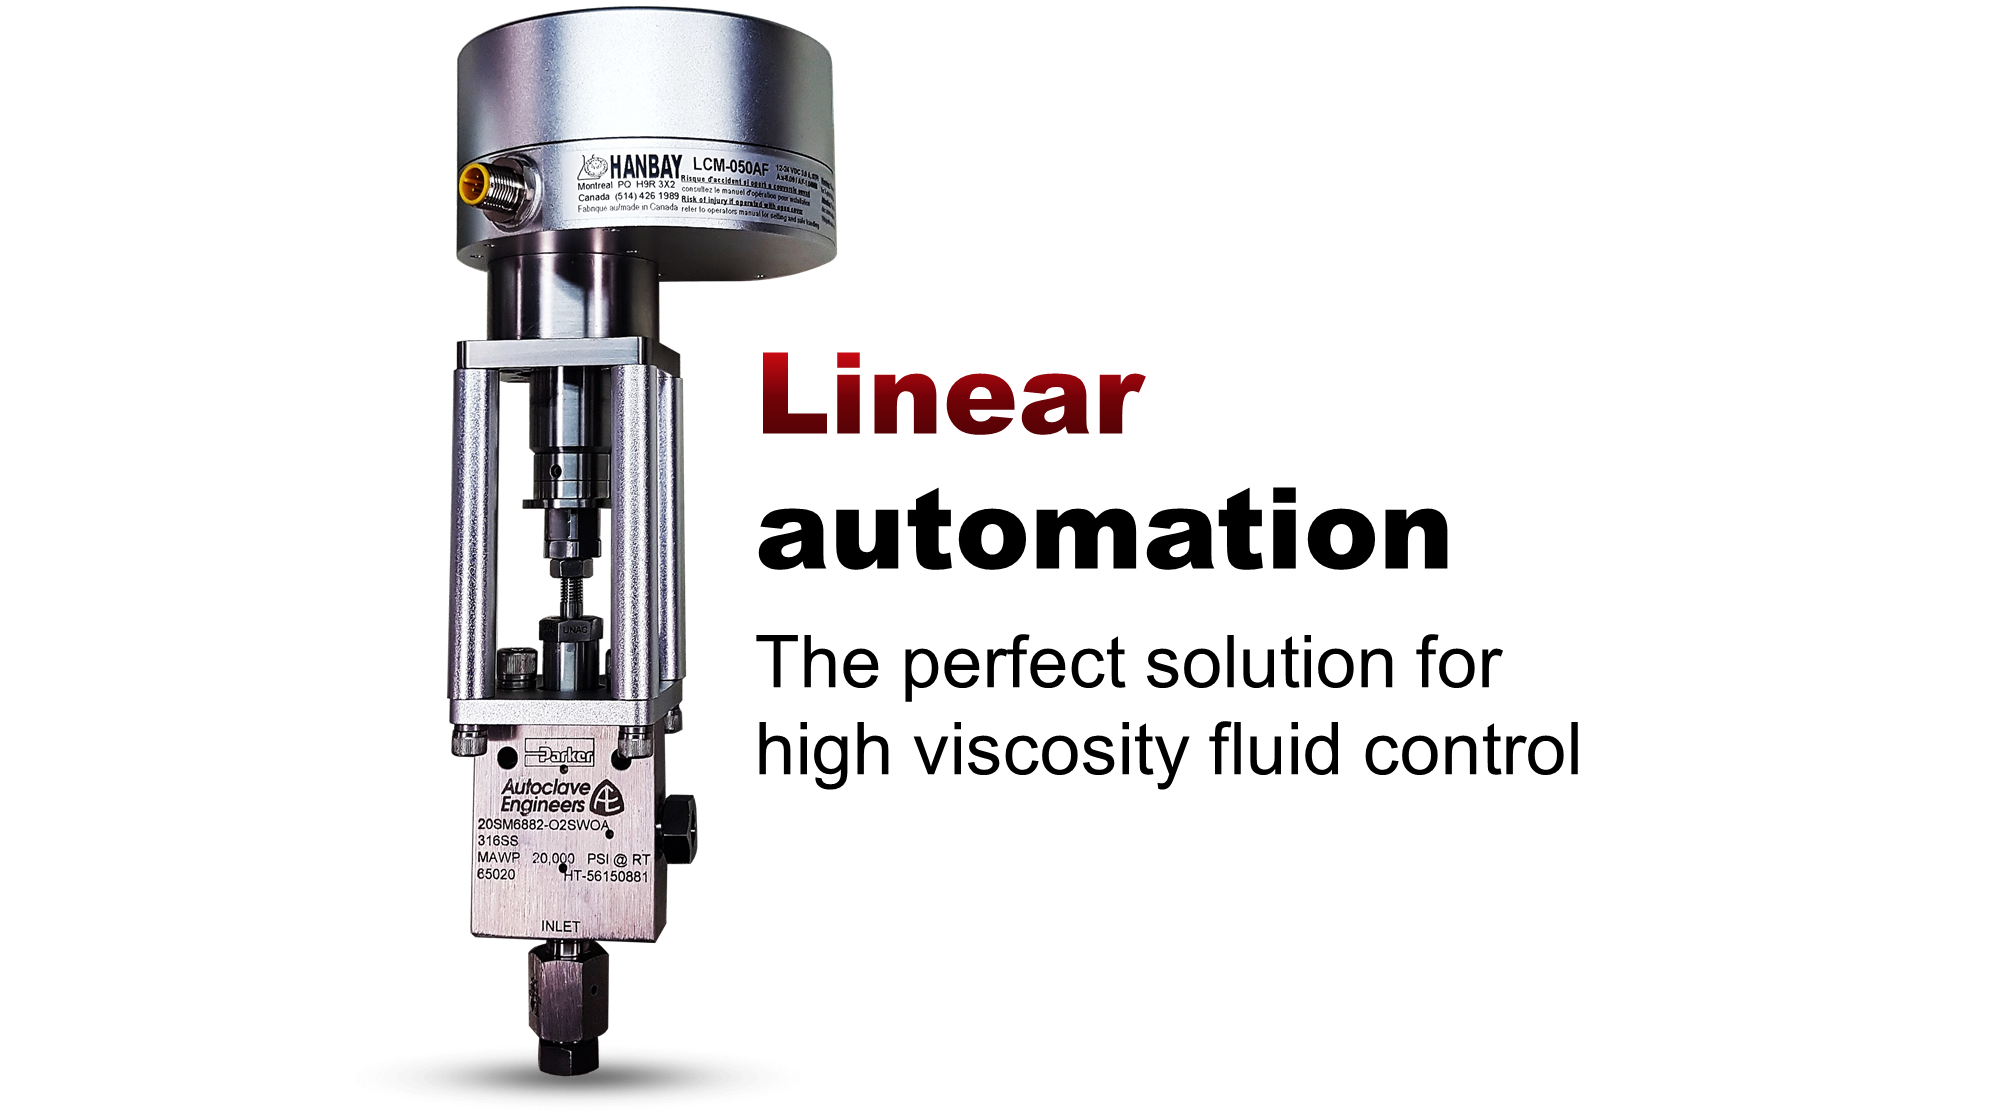 Linear automation